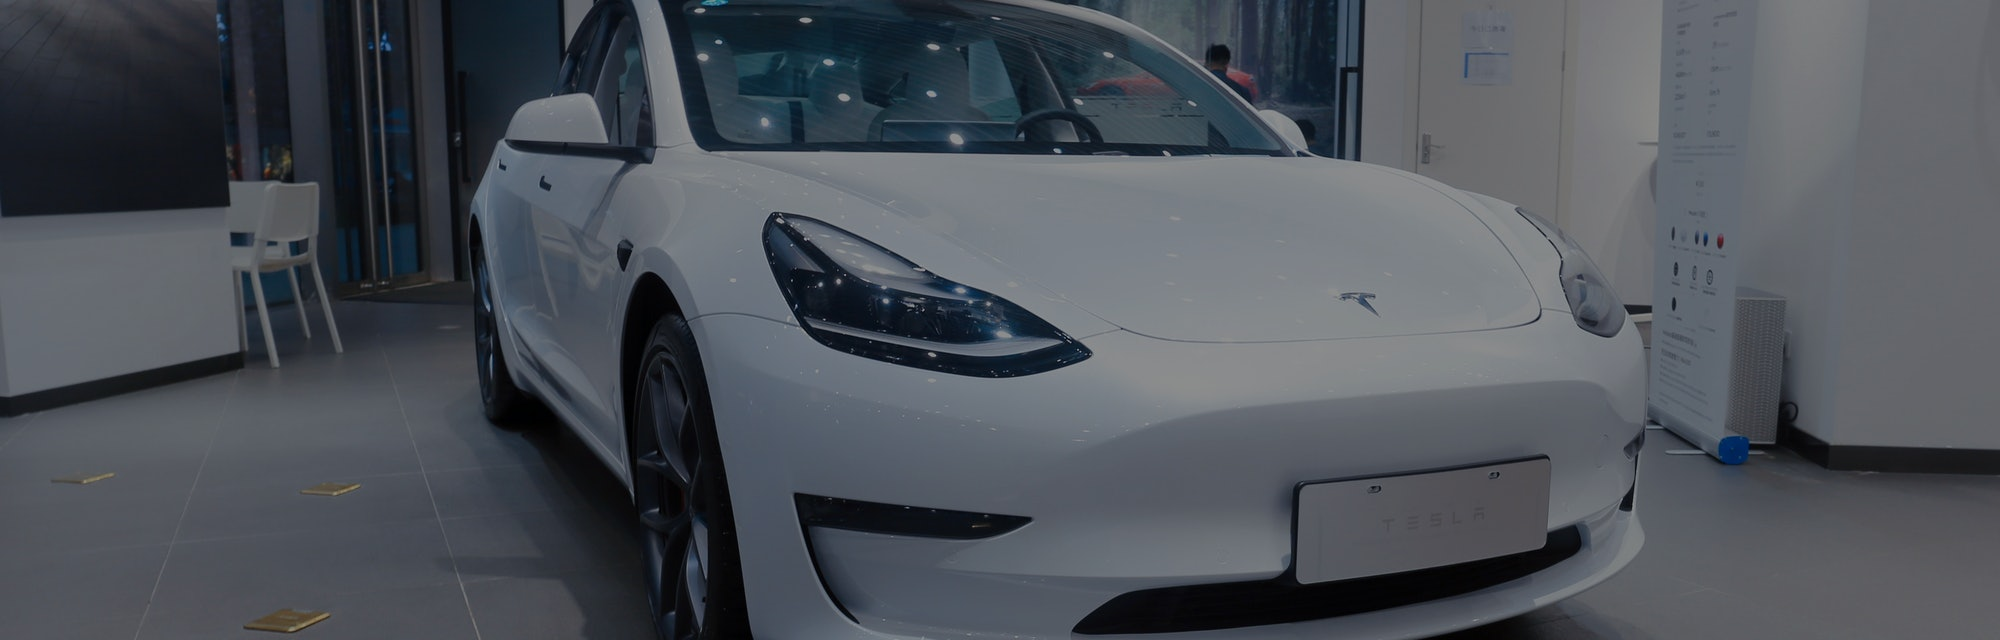 SHANGHAI, CHINA - MAY 7, 2021 - A new energy electric car is seen at Tesla's flagship store in Shang...